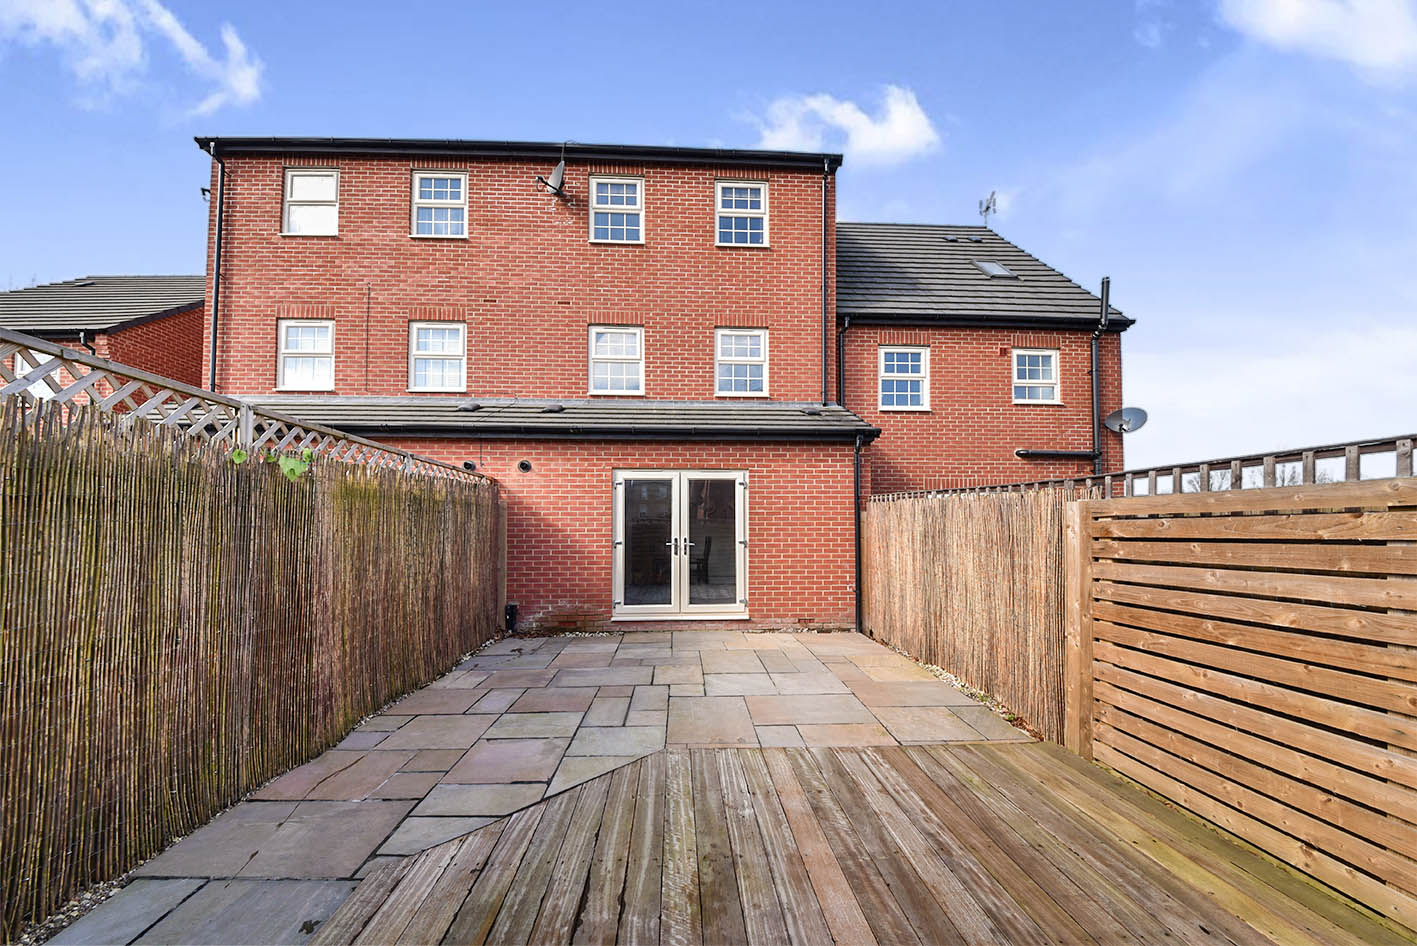 Property For Sale In Sinfin Derby